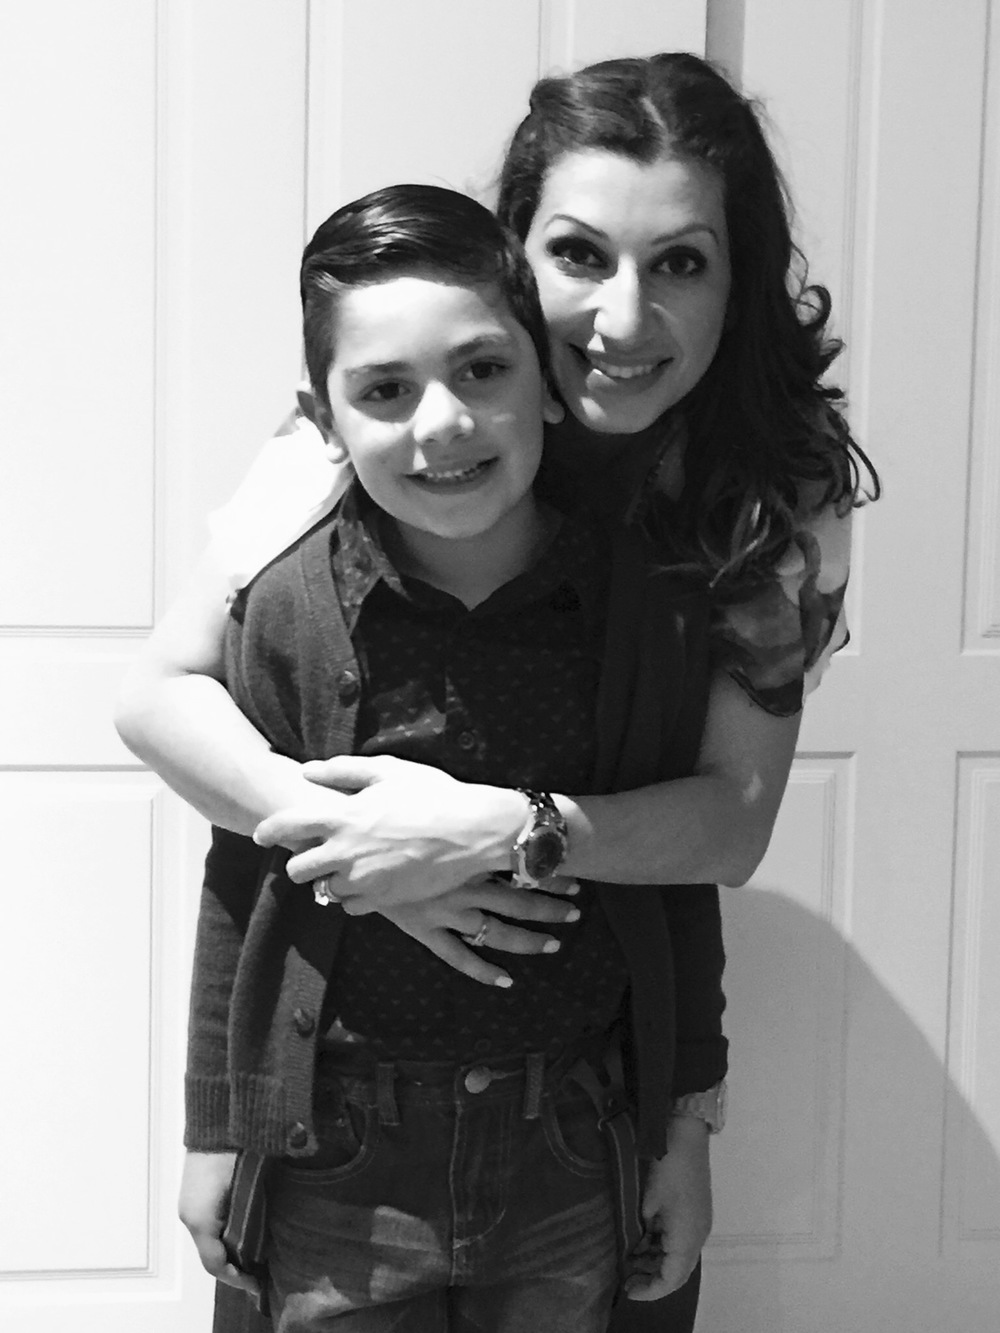 Diana and her son Gabe